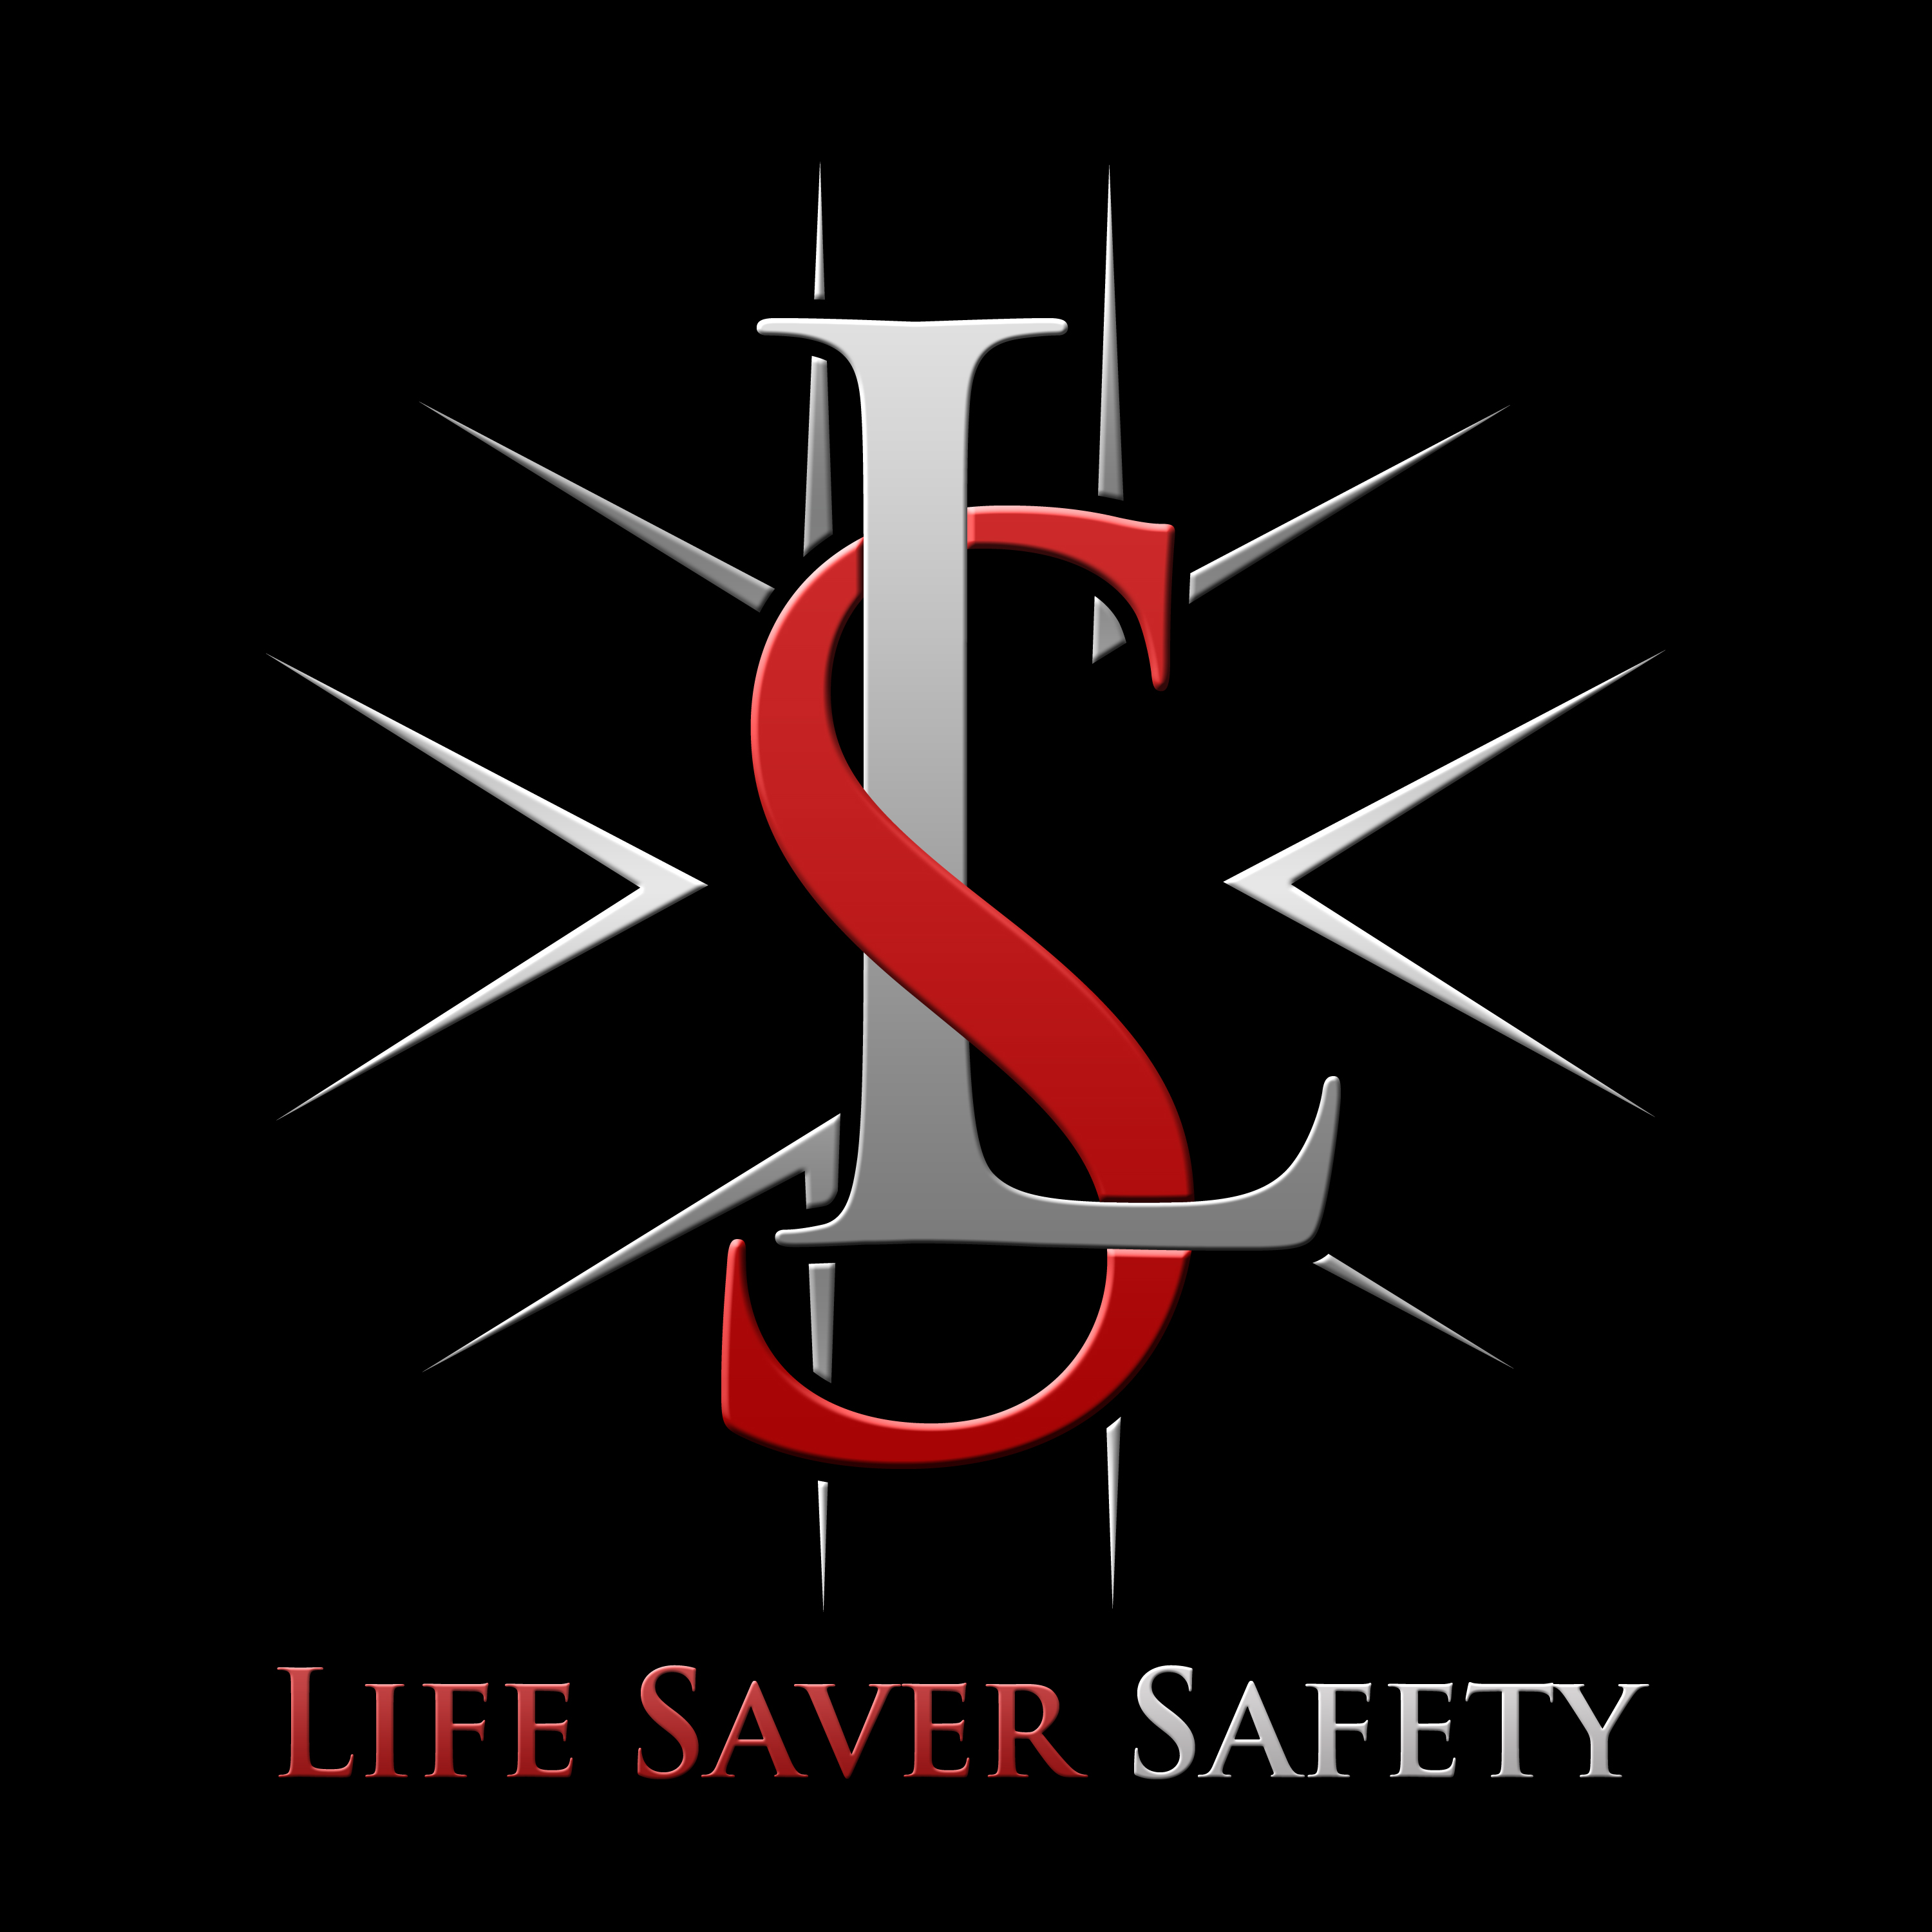 Cpr aed and first aid training life saver safety full width theme by skt themes 1betcityfo Image collections